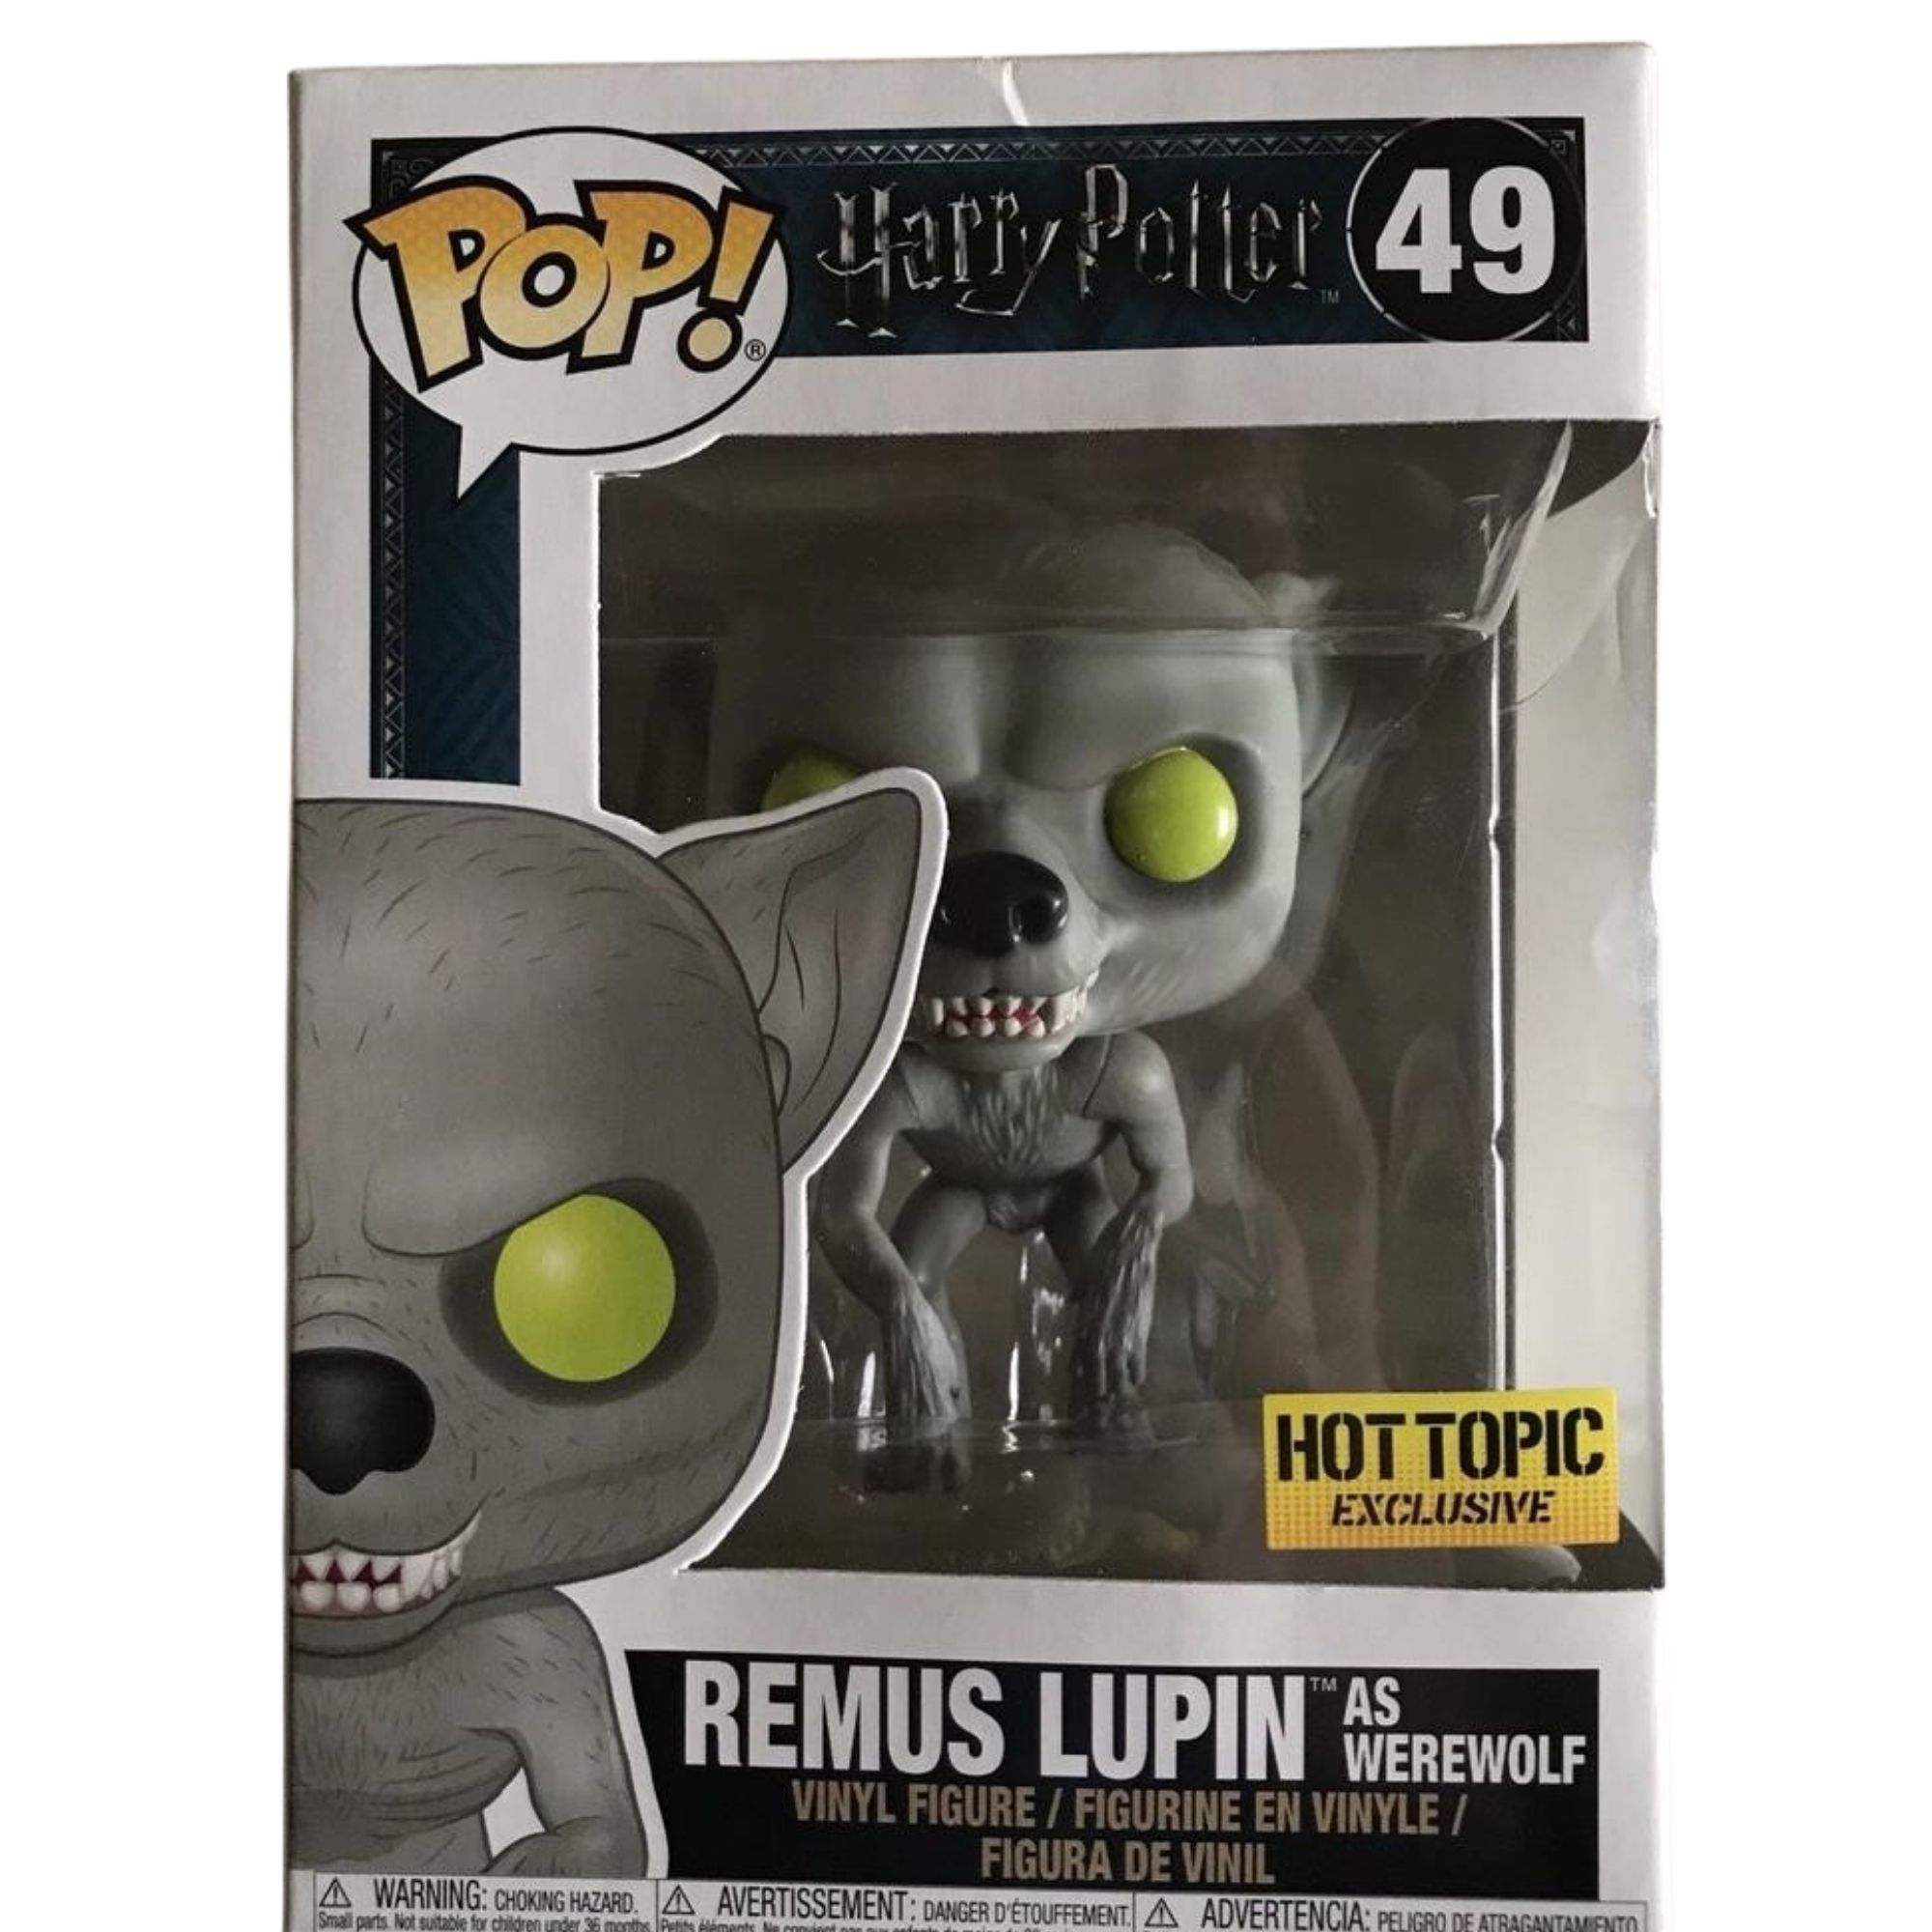 Funko Pop Harry Potter Remus Lupin As Werewolf Hot Topic Exclusivo #49  - Game Land Brinquedos